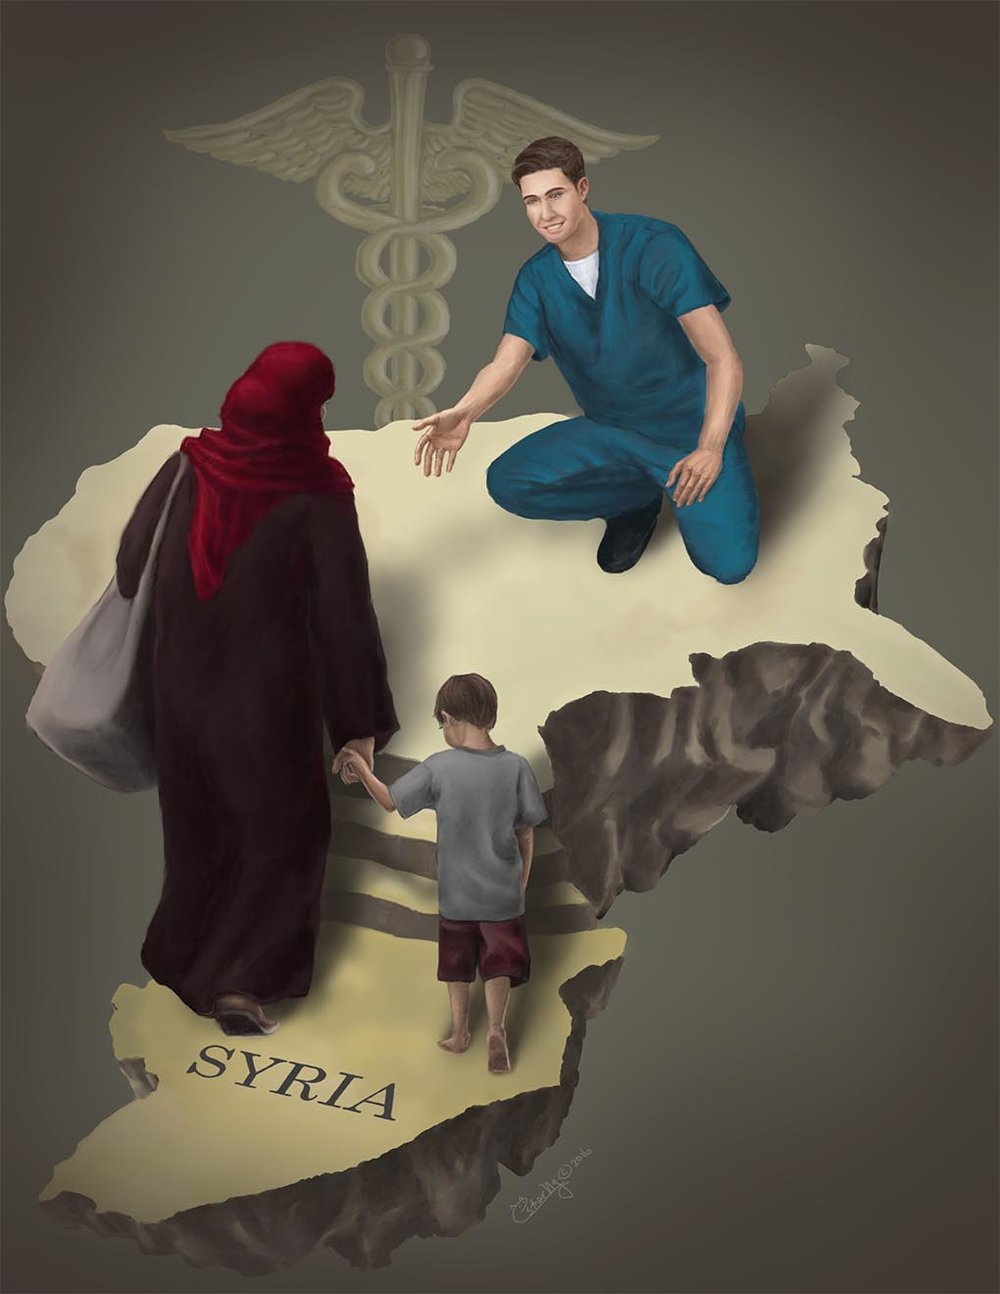 A Helping Hand This editorial piece is created to accompany an article in the Northwestern Public Health Review discussing the health care for migrants from Syria.